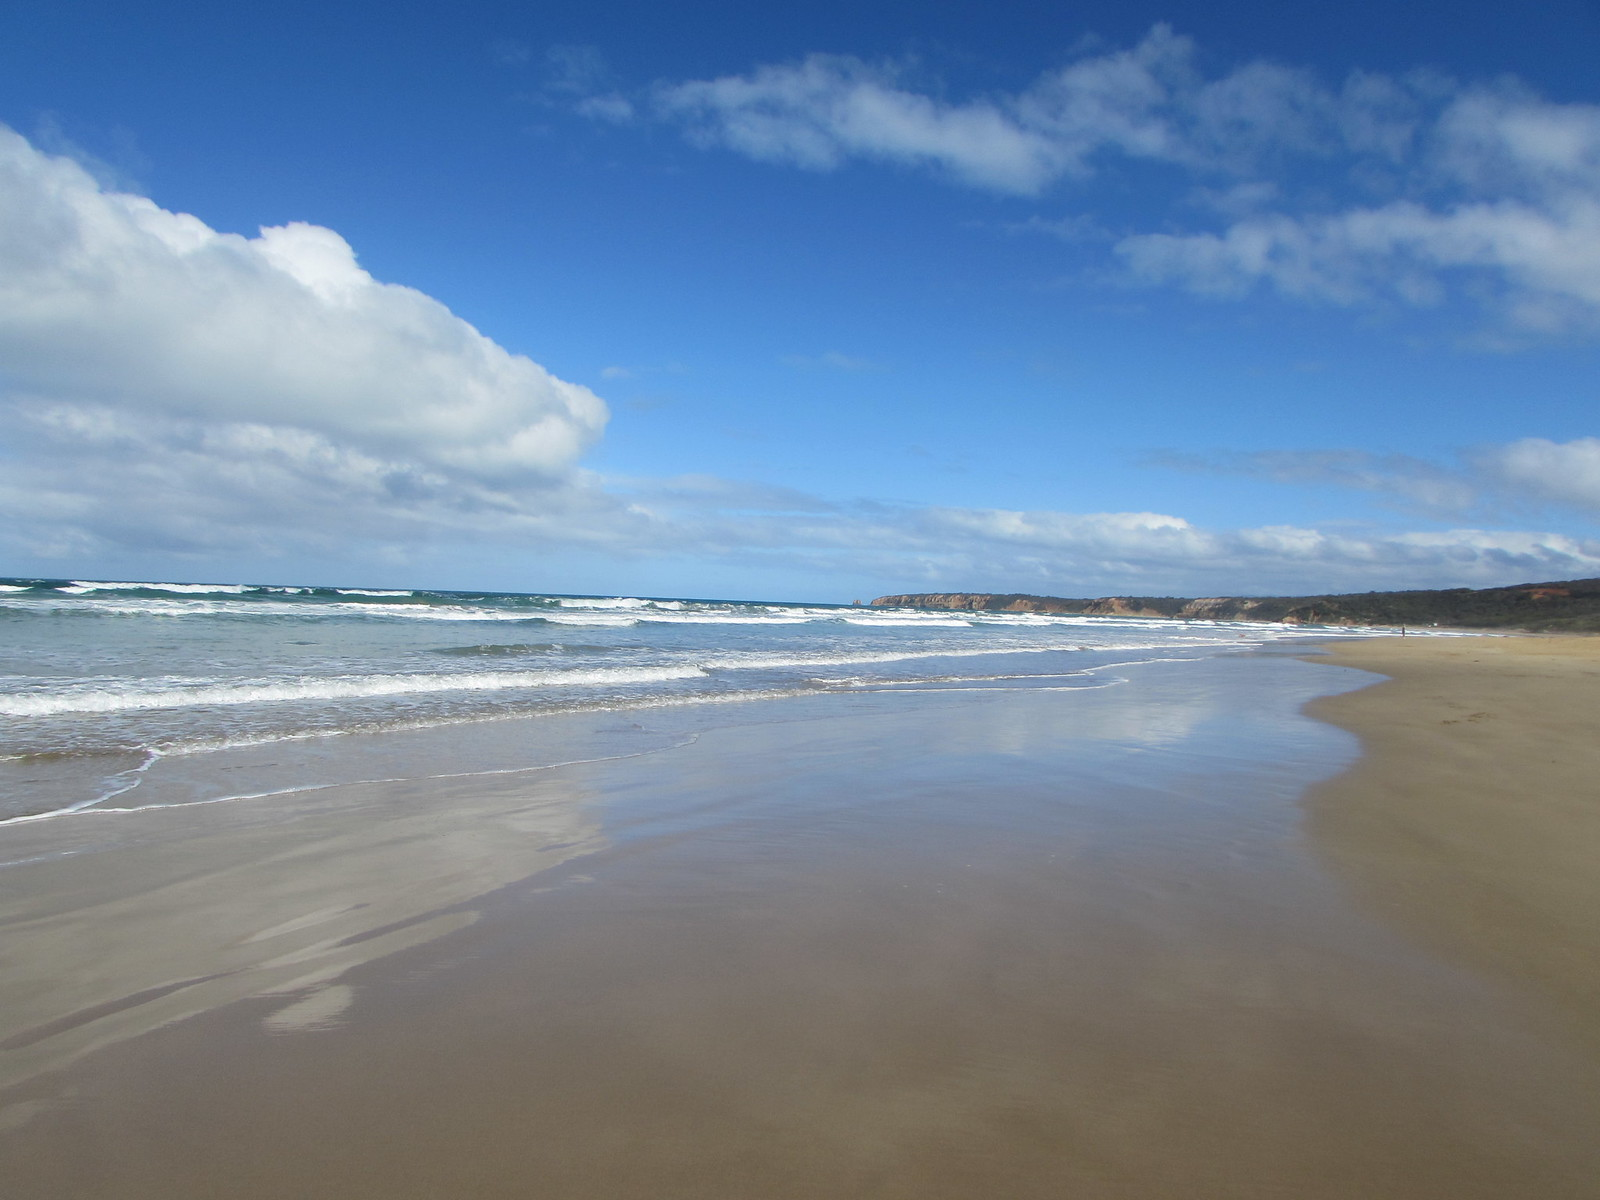 Another of the beautiful beaches